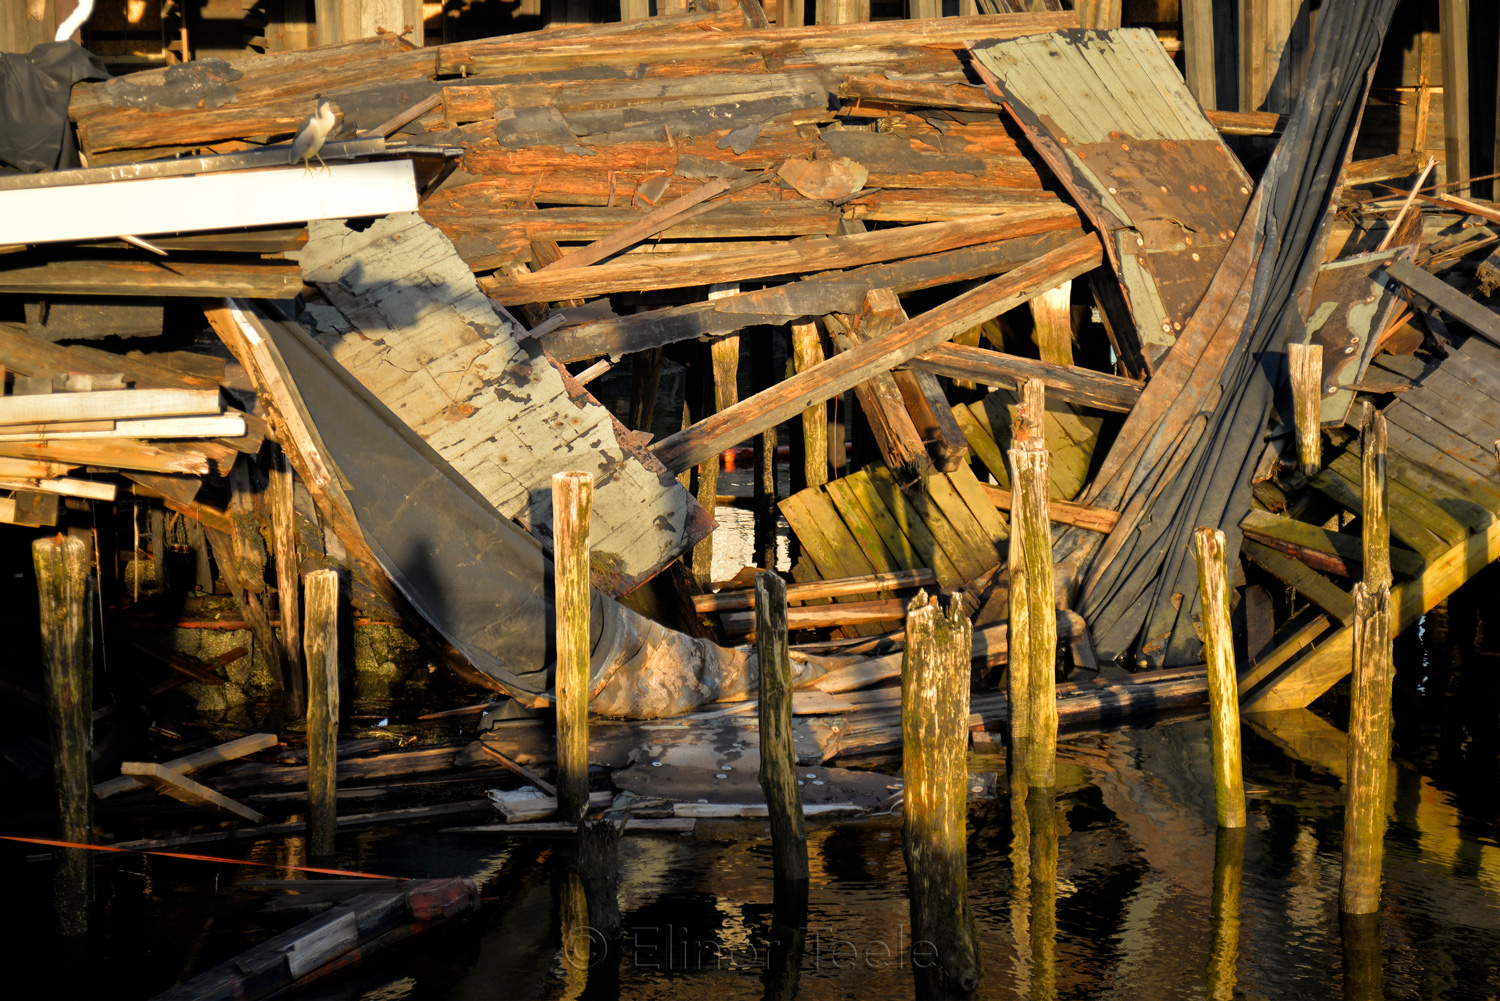 Gloucester Waterfront - Collapsed Warehouse 3